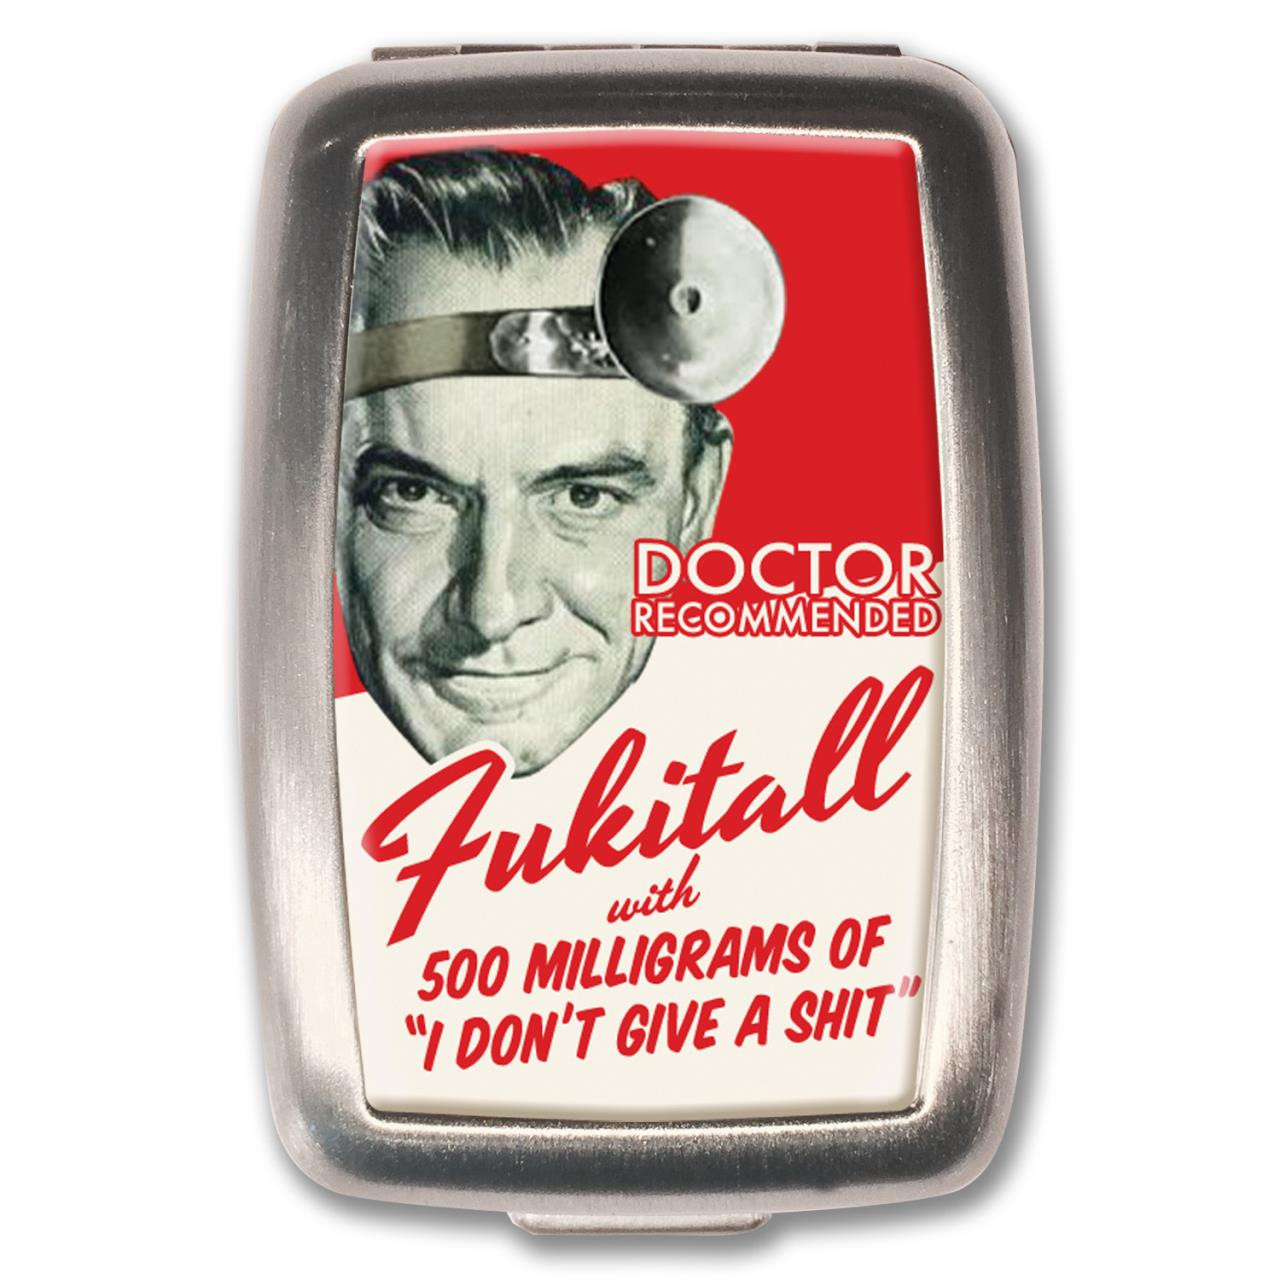 Fukitall Pill Box - 0641938654875